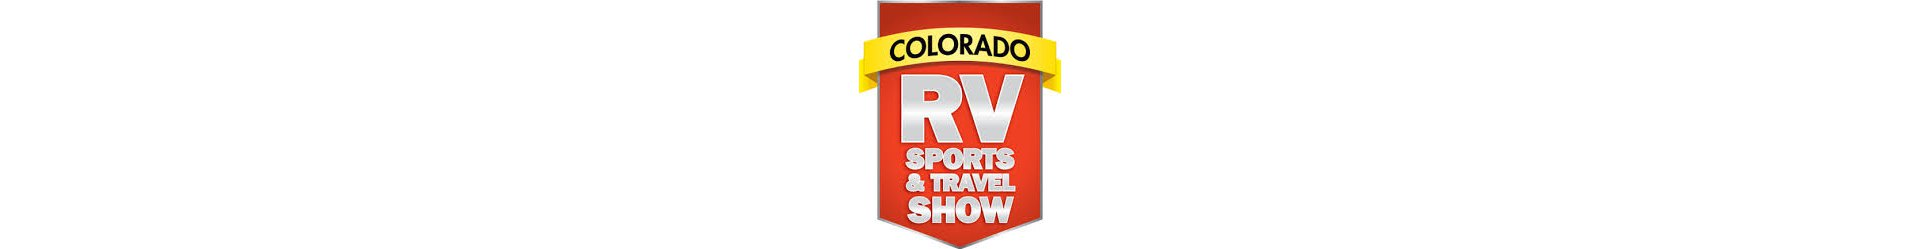 Colorado RV, Sports & Travel Show